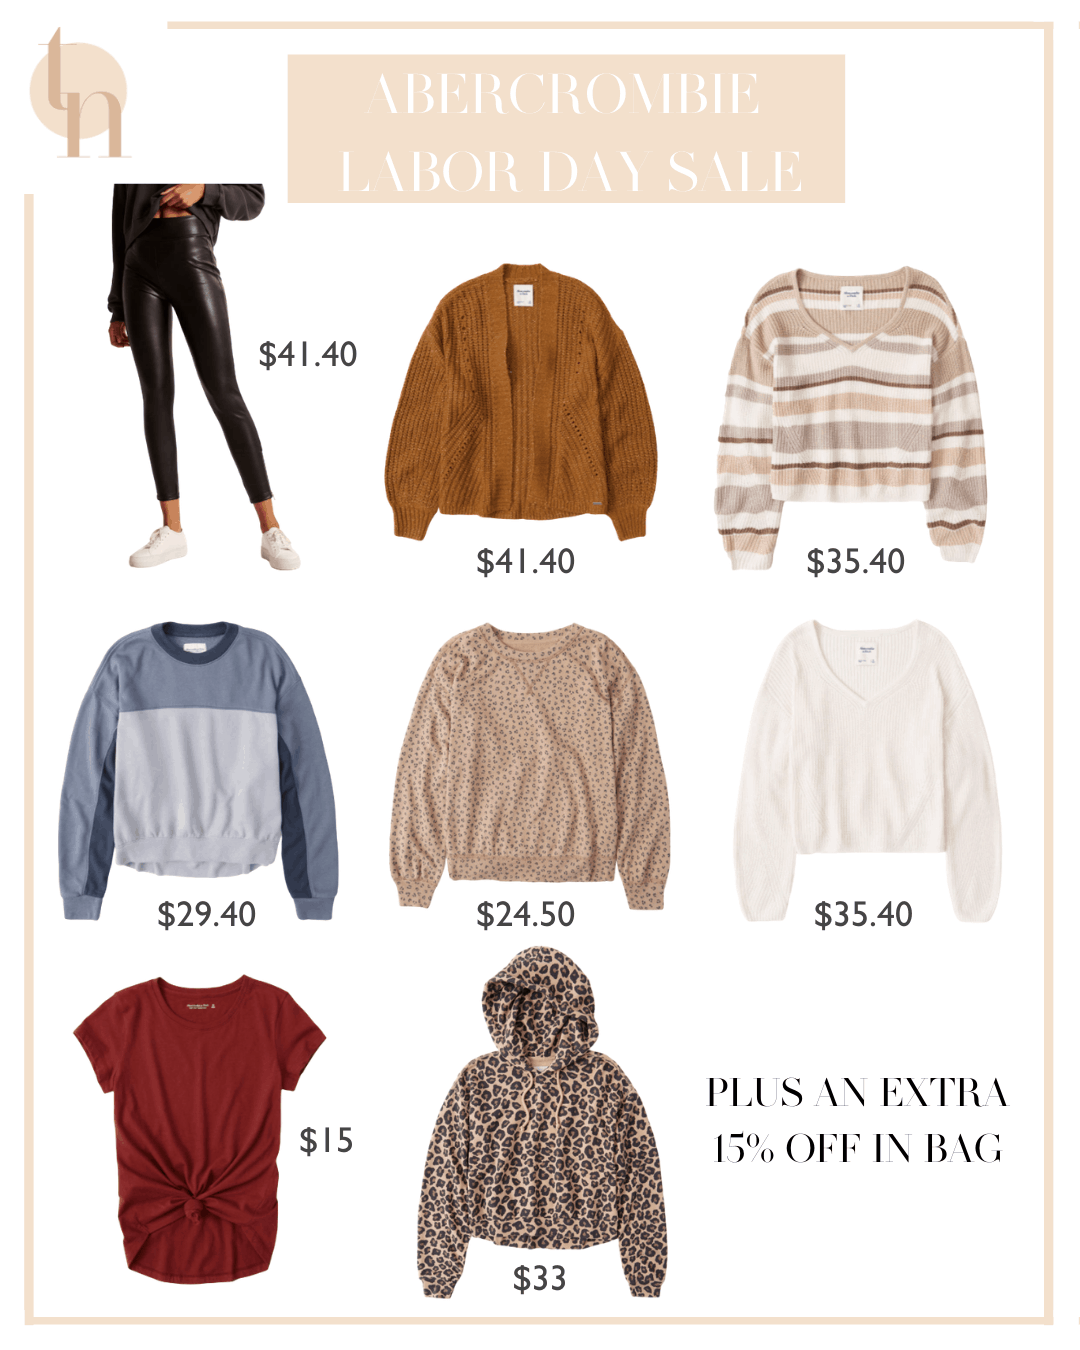 Labor Day Sales by popular Dallas life and style blog, Glamorous Versatility: collage image of Abercrombie and Fitch sweaters, leather pants, hoodies, and pullovers.